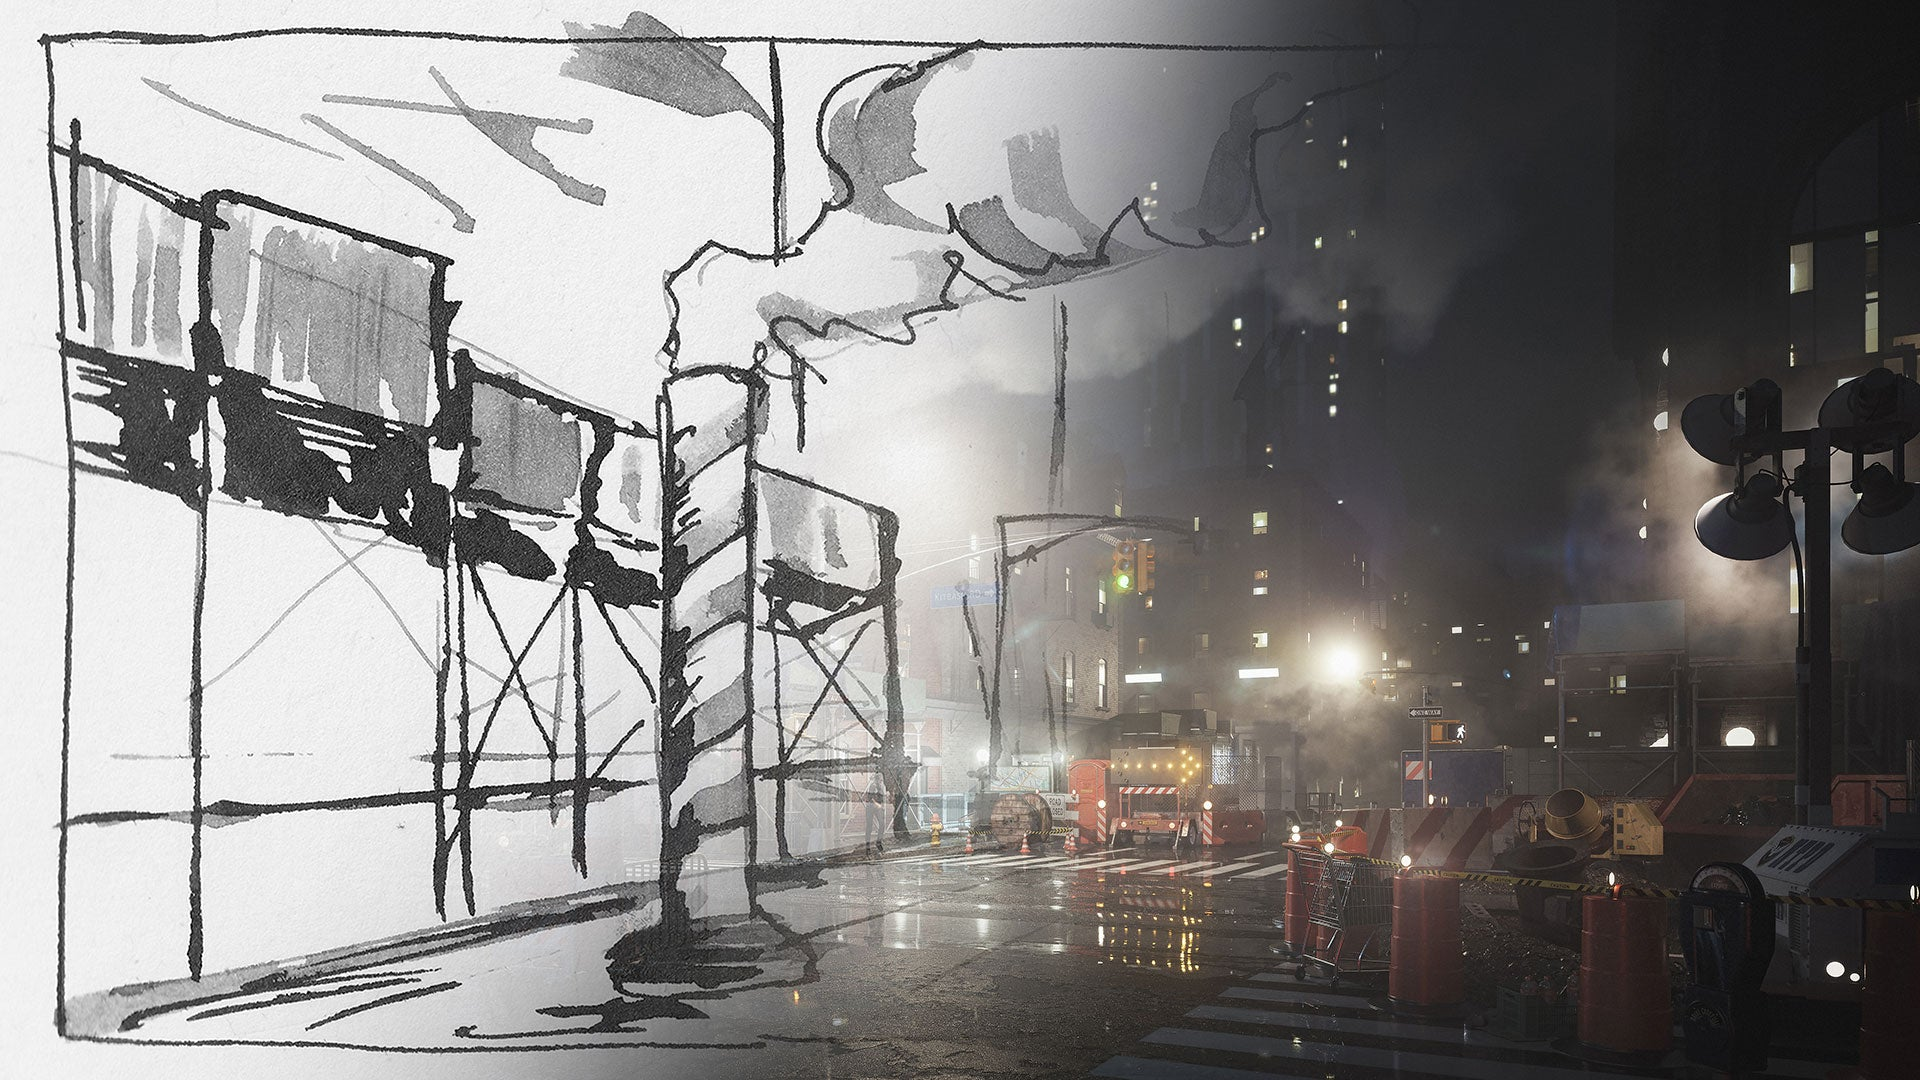 City Streets from sketch to 3d